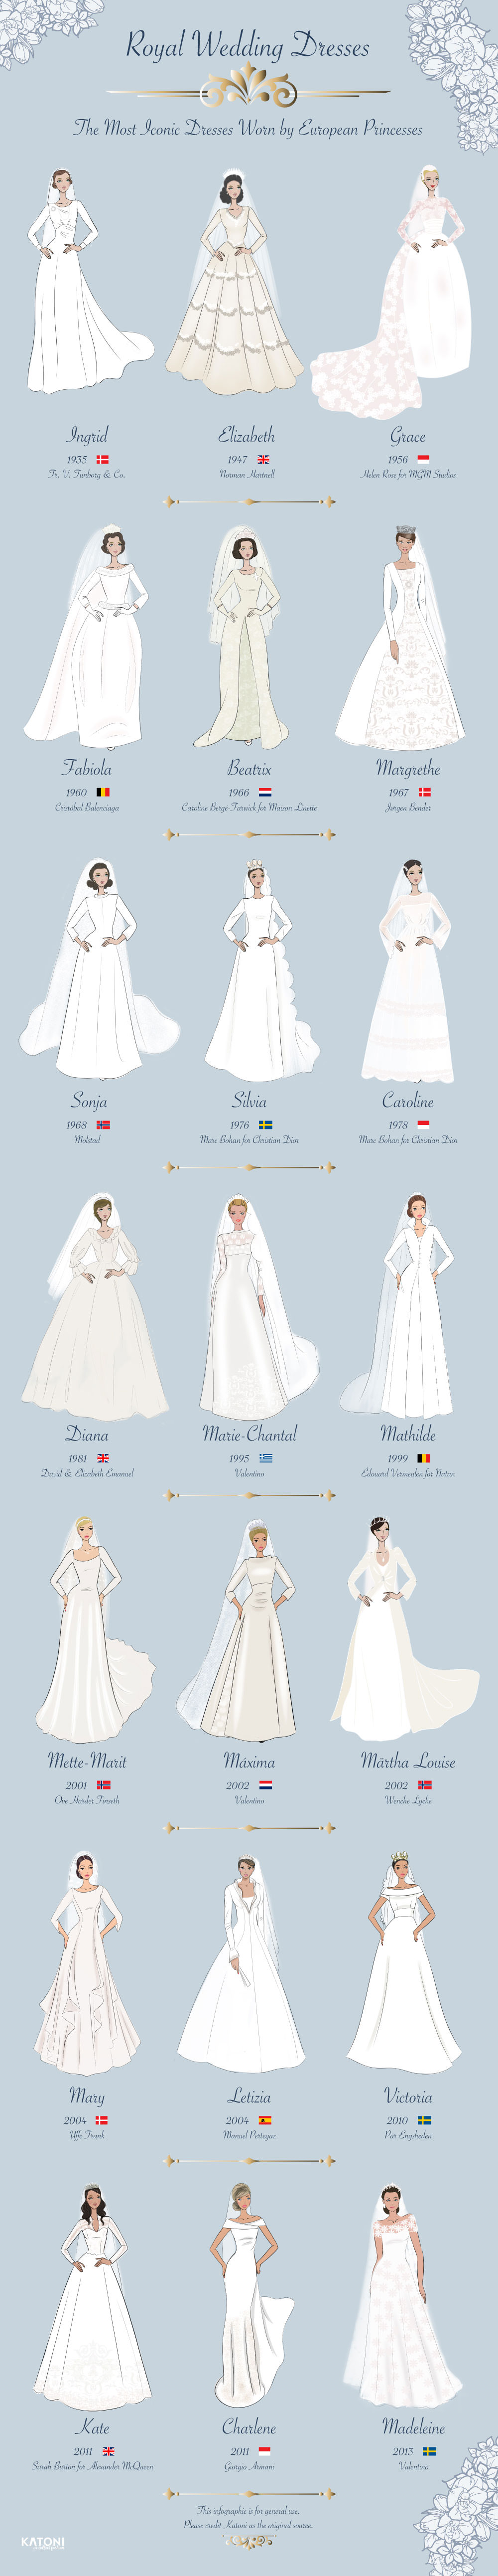 Royal Wedding Dresses of History